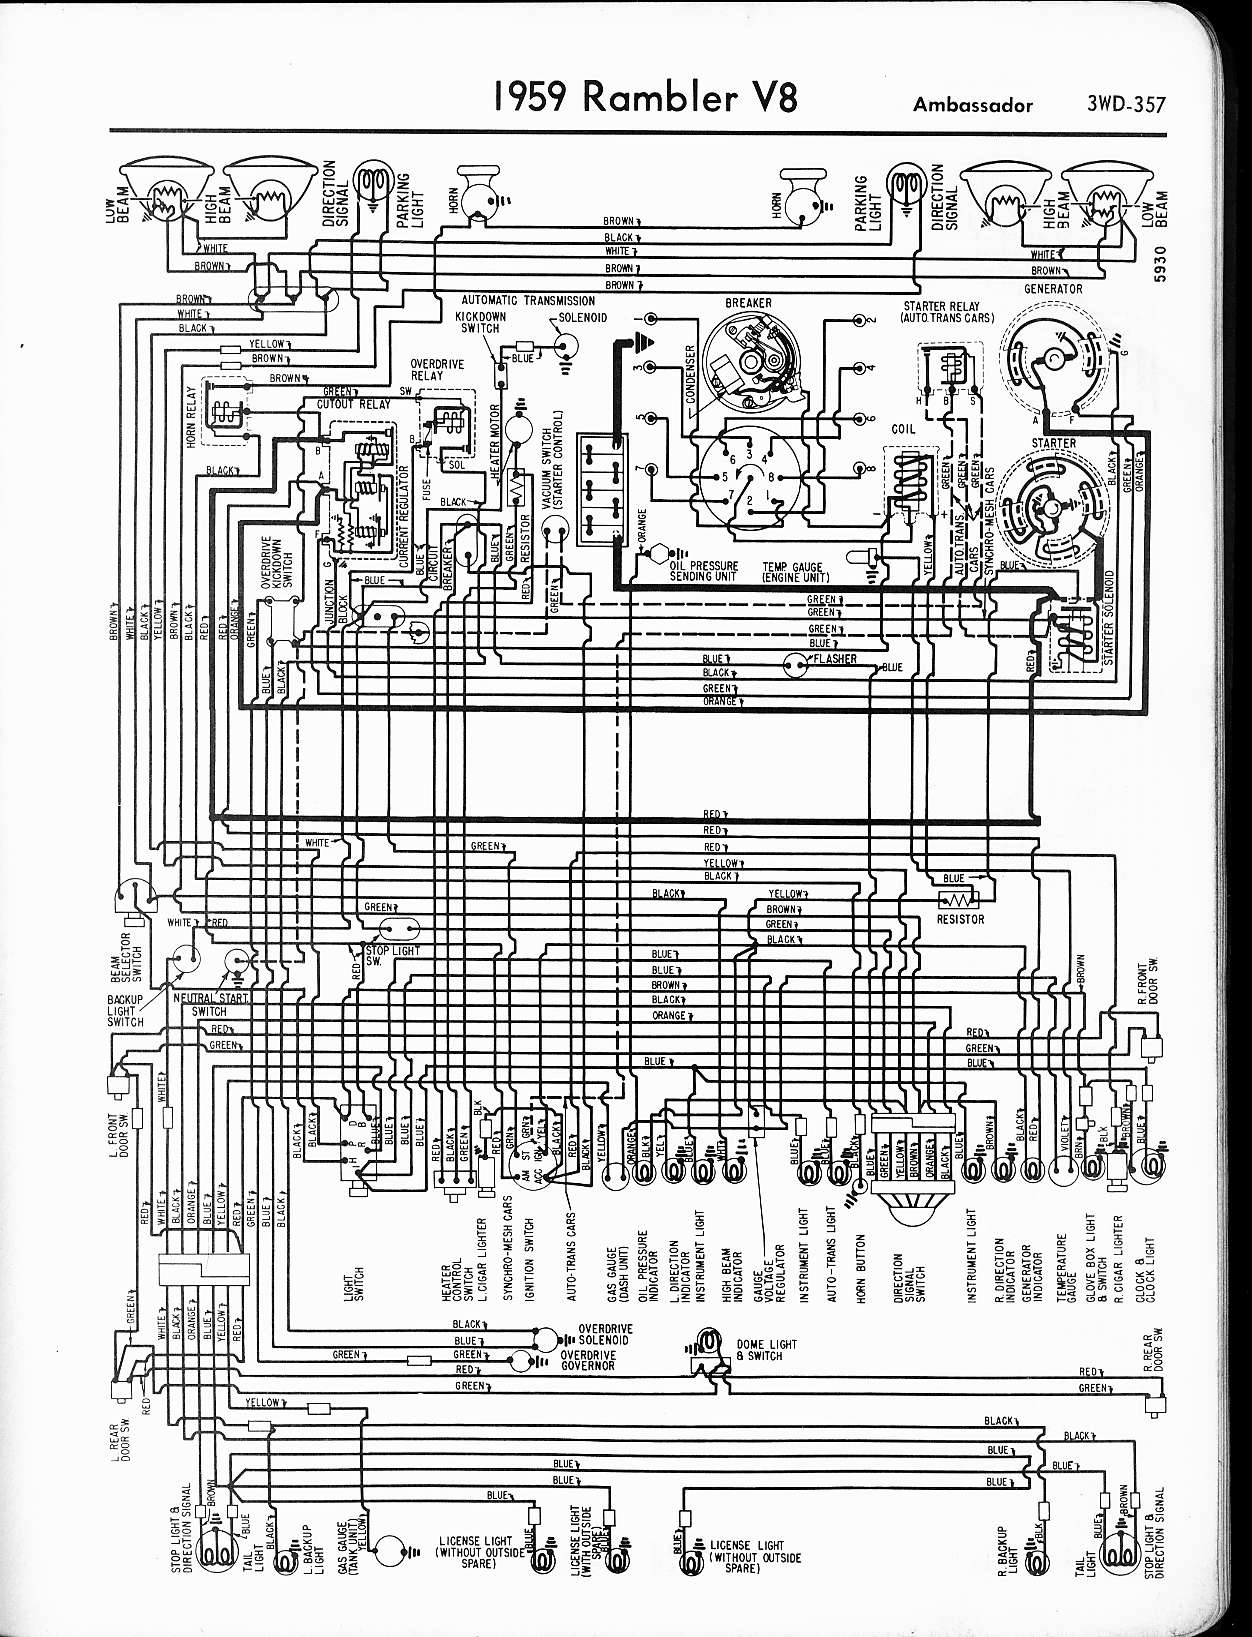 MWire5765 357 rambler wiring diagrams the old car manual project amc rebel wiring diagram at edmiracle.co